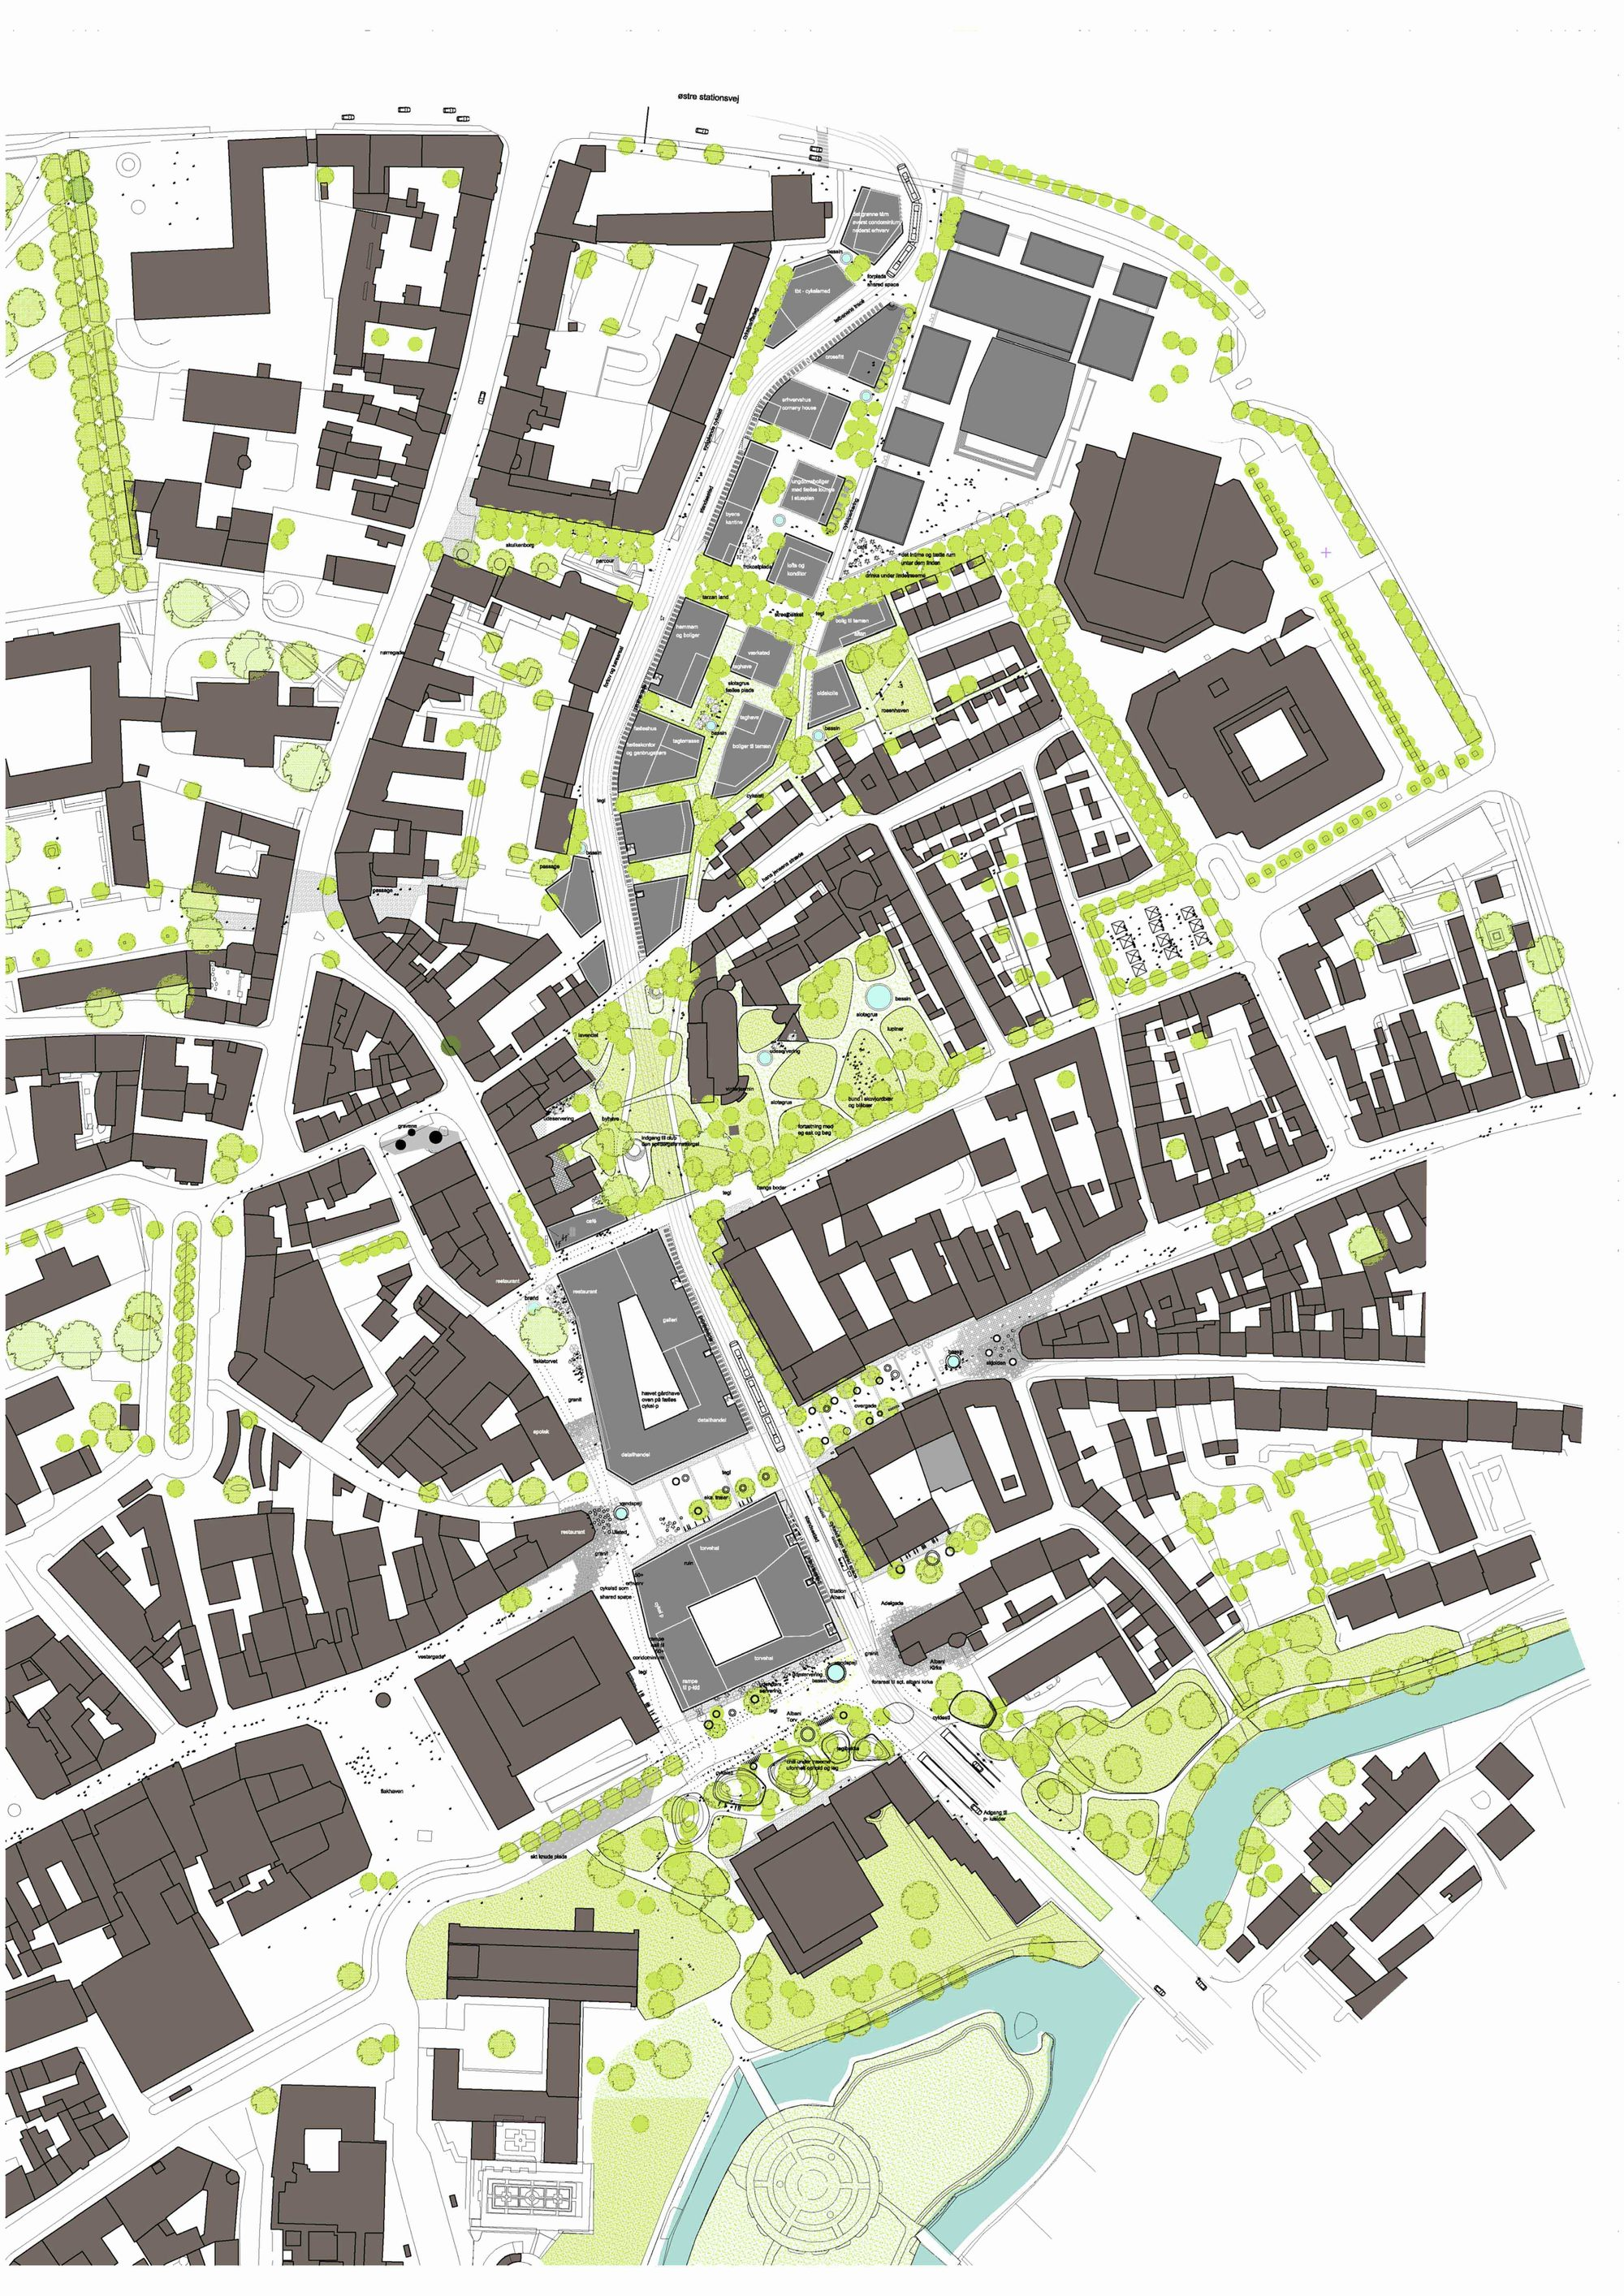 Circulation Patterns Architecture Gallery Of Thomas B Thrigesgade City Design Entasis 8